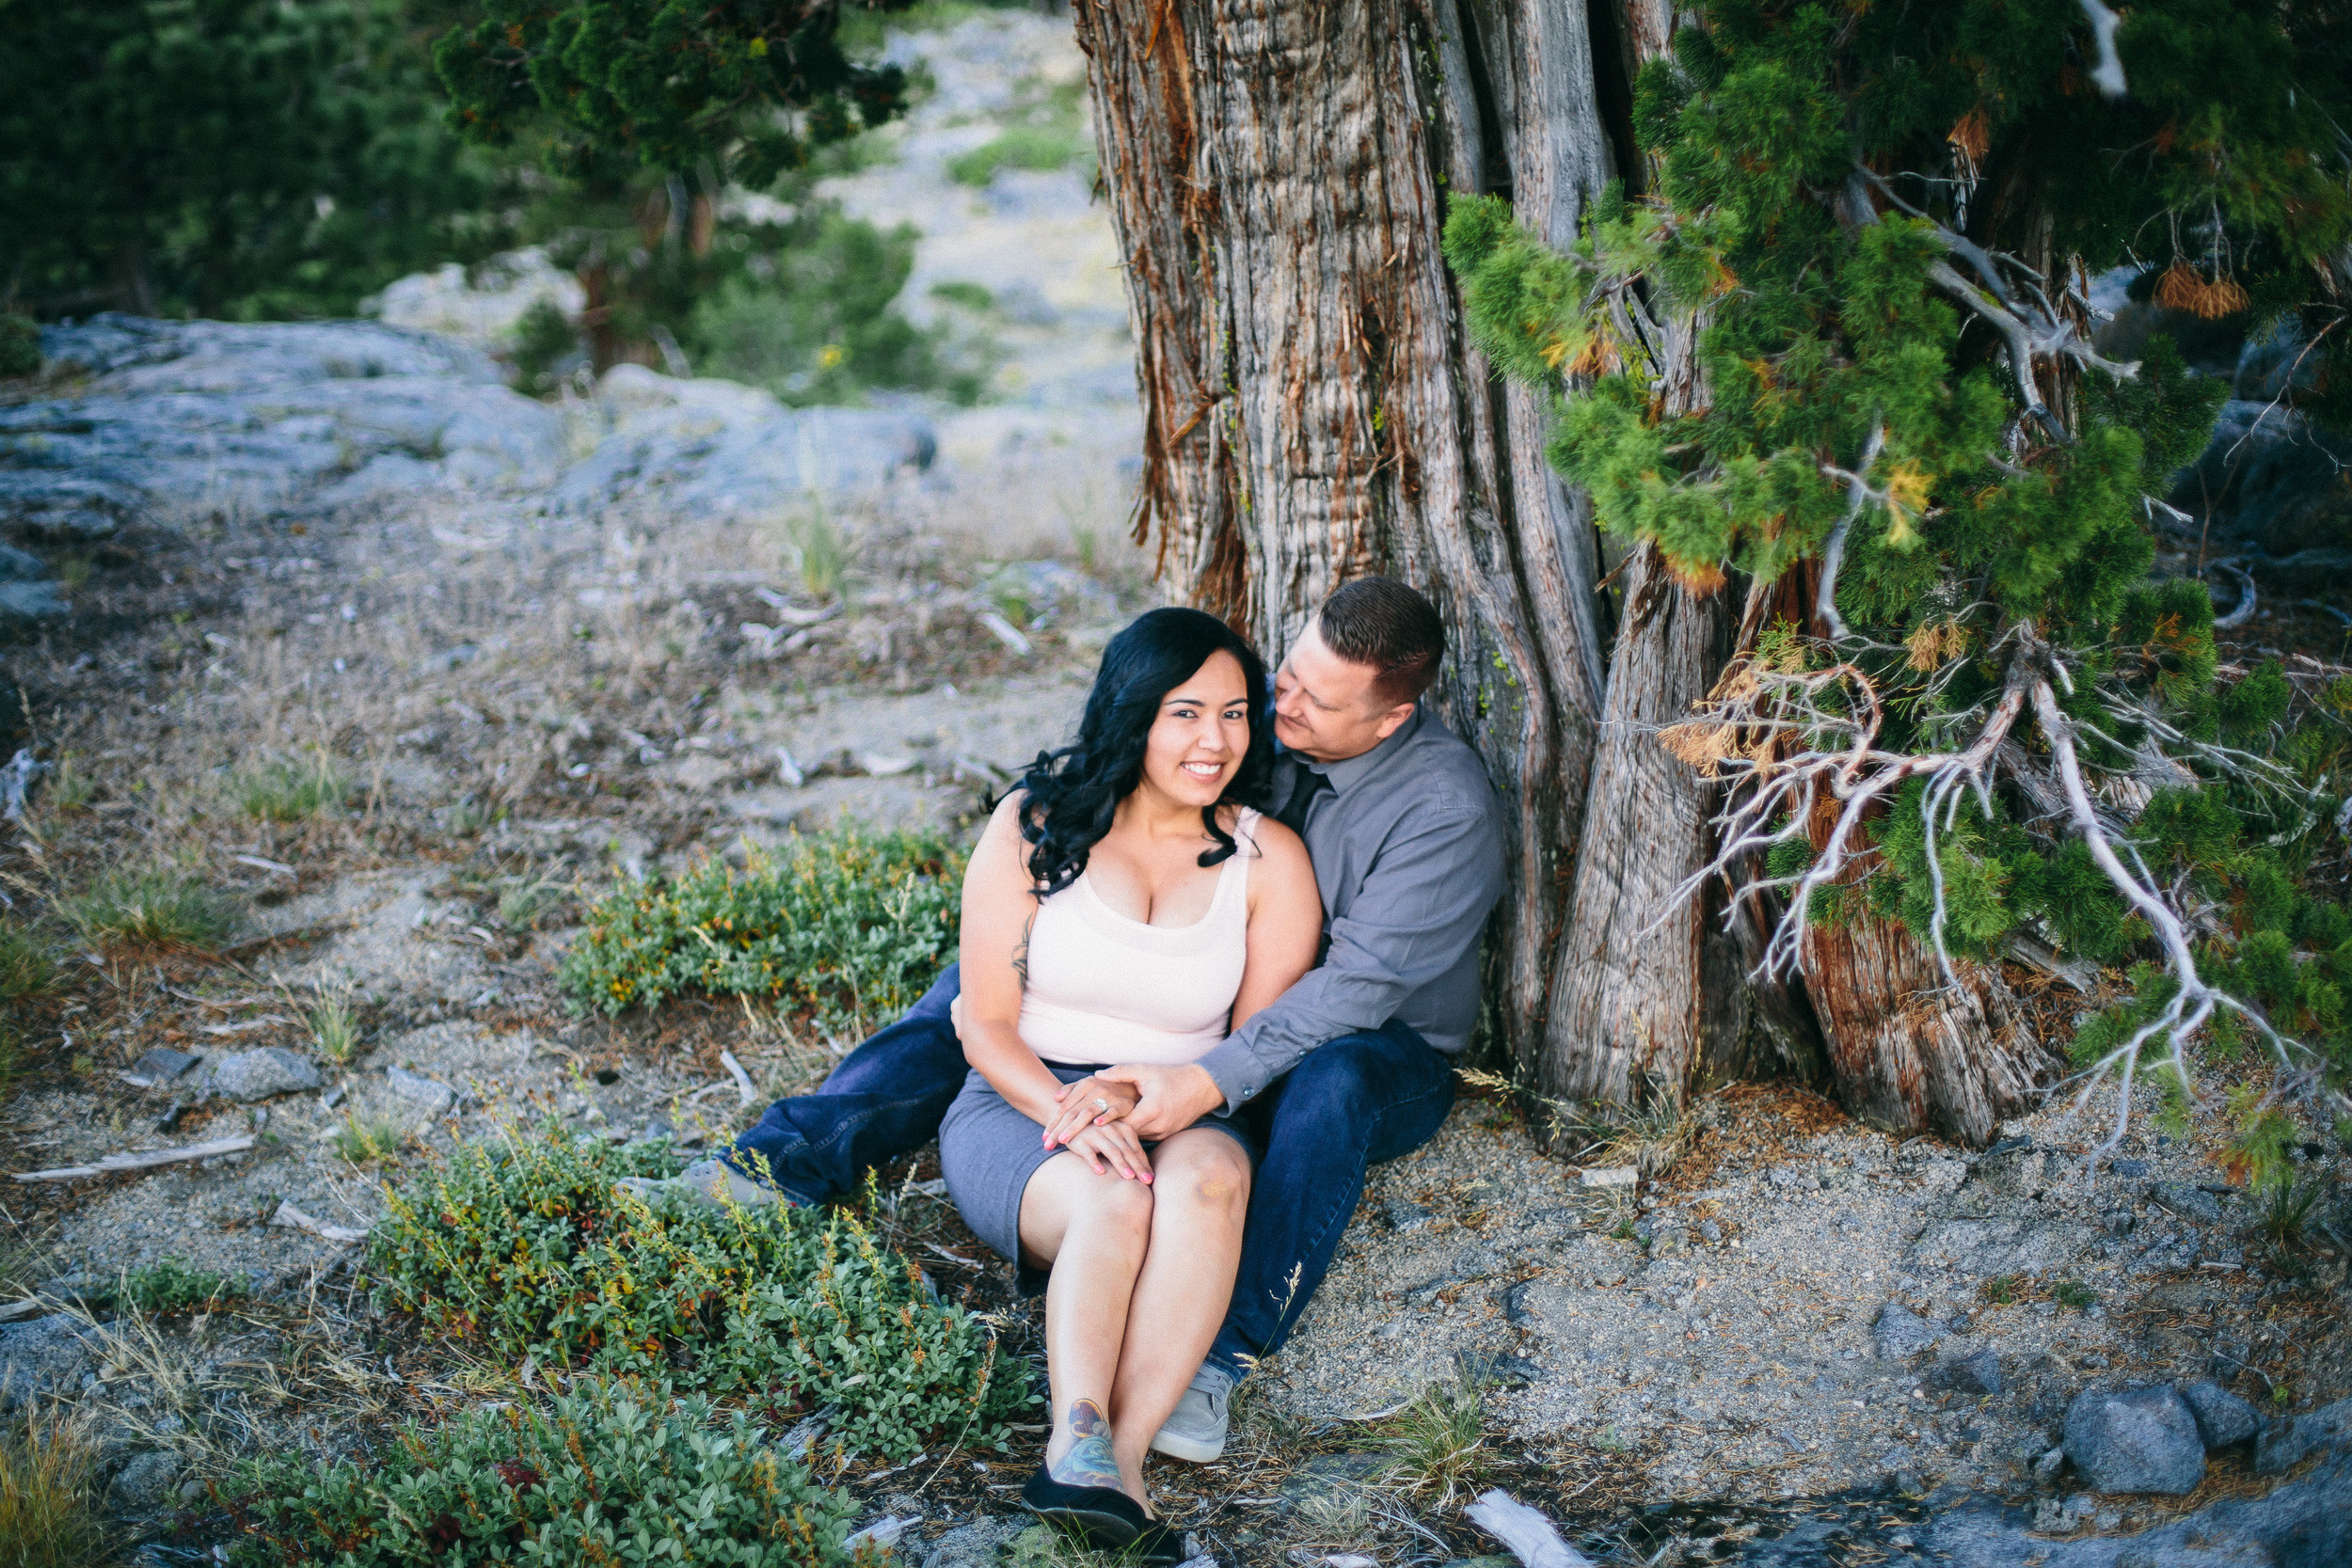 Clint & Veronica Engaged - Corrie Mick Photography-38.jpg